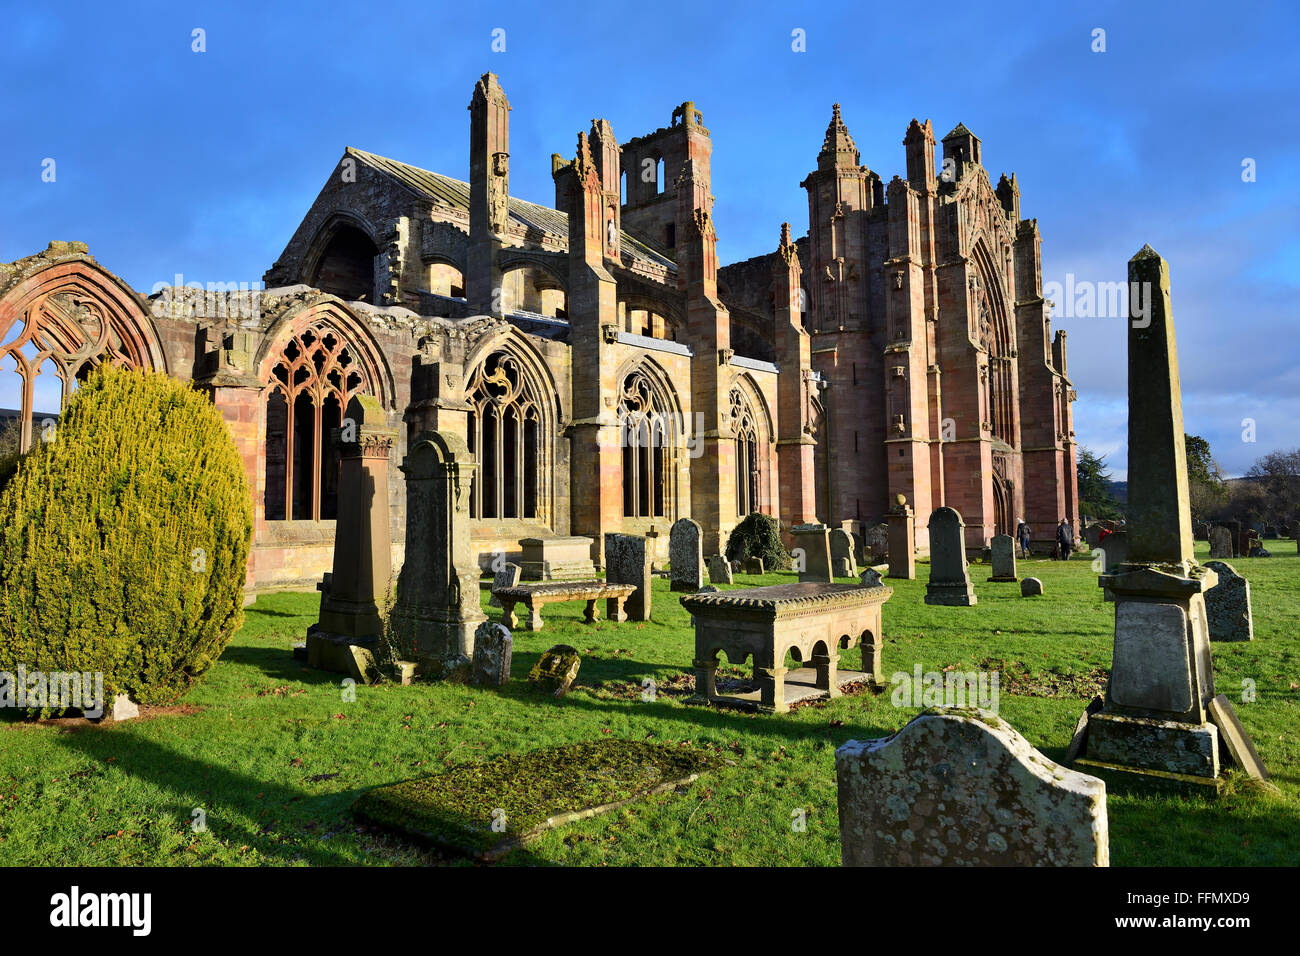 Ruins of Melrose Abbey, Scottish Borders, UK - Stock Image